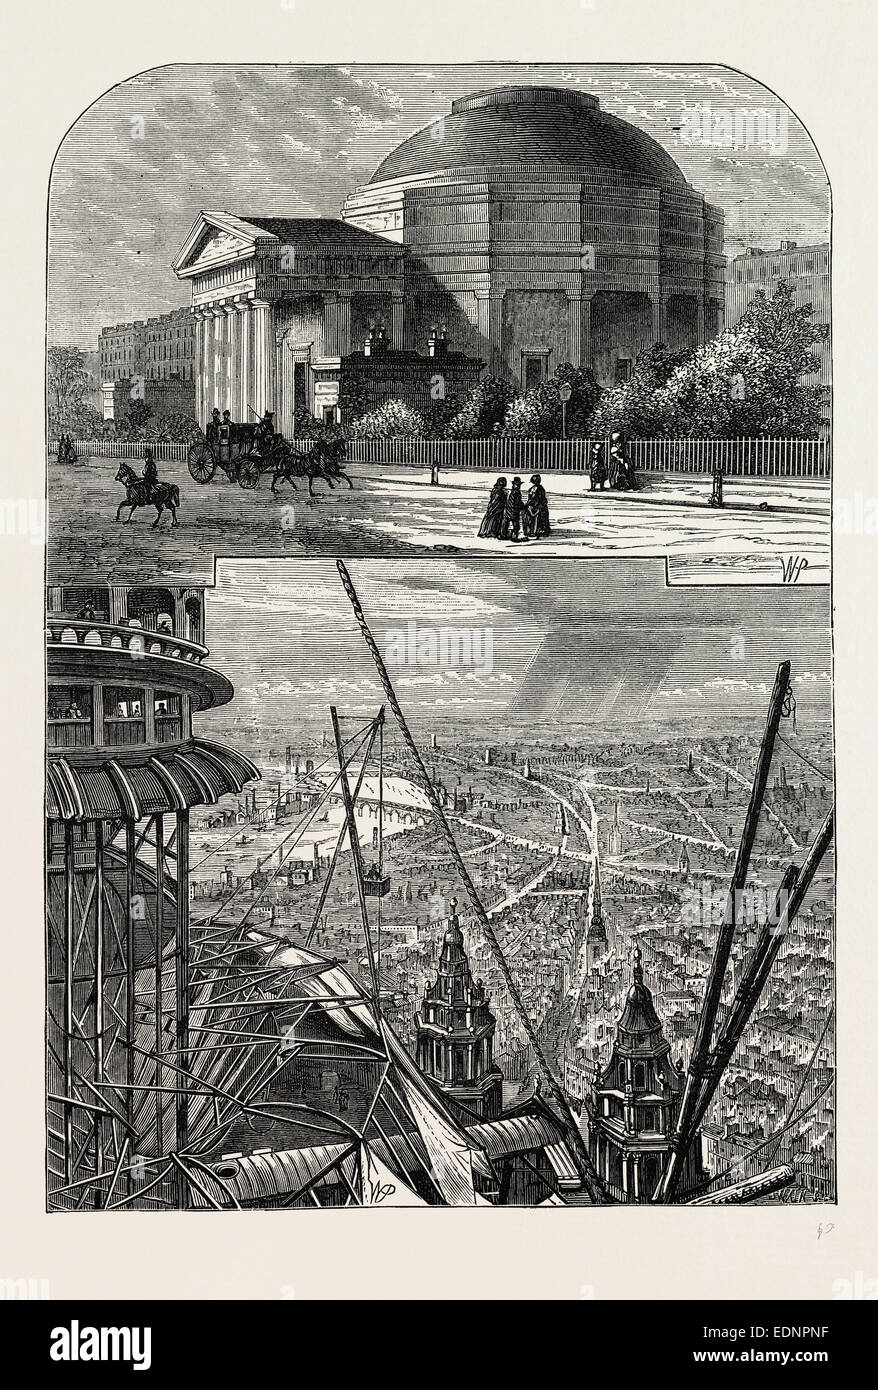 THE COLOSSEUM IN 1827. London, UK, 19th century engraving - Stock Image